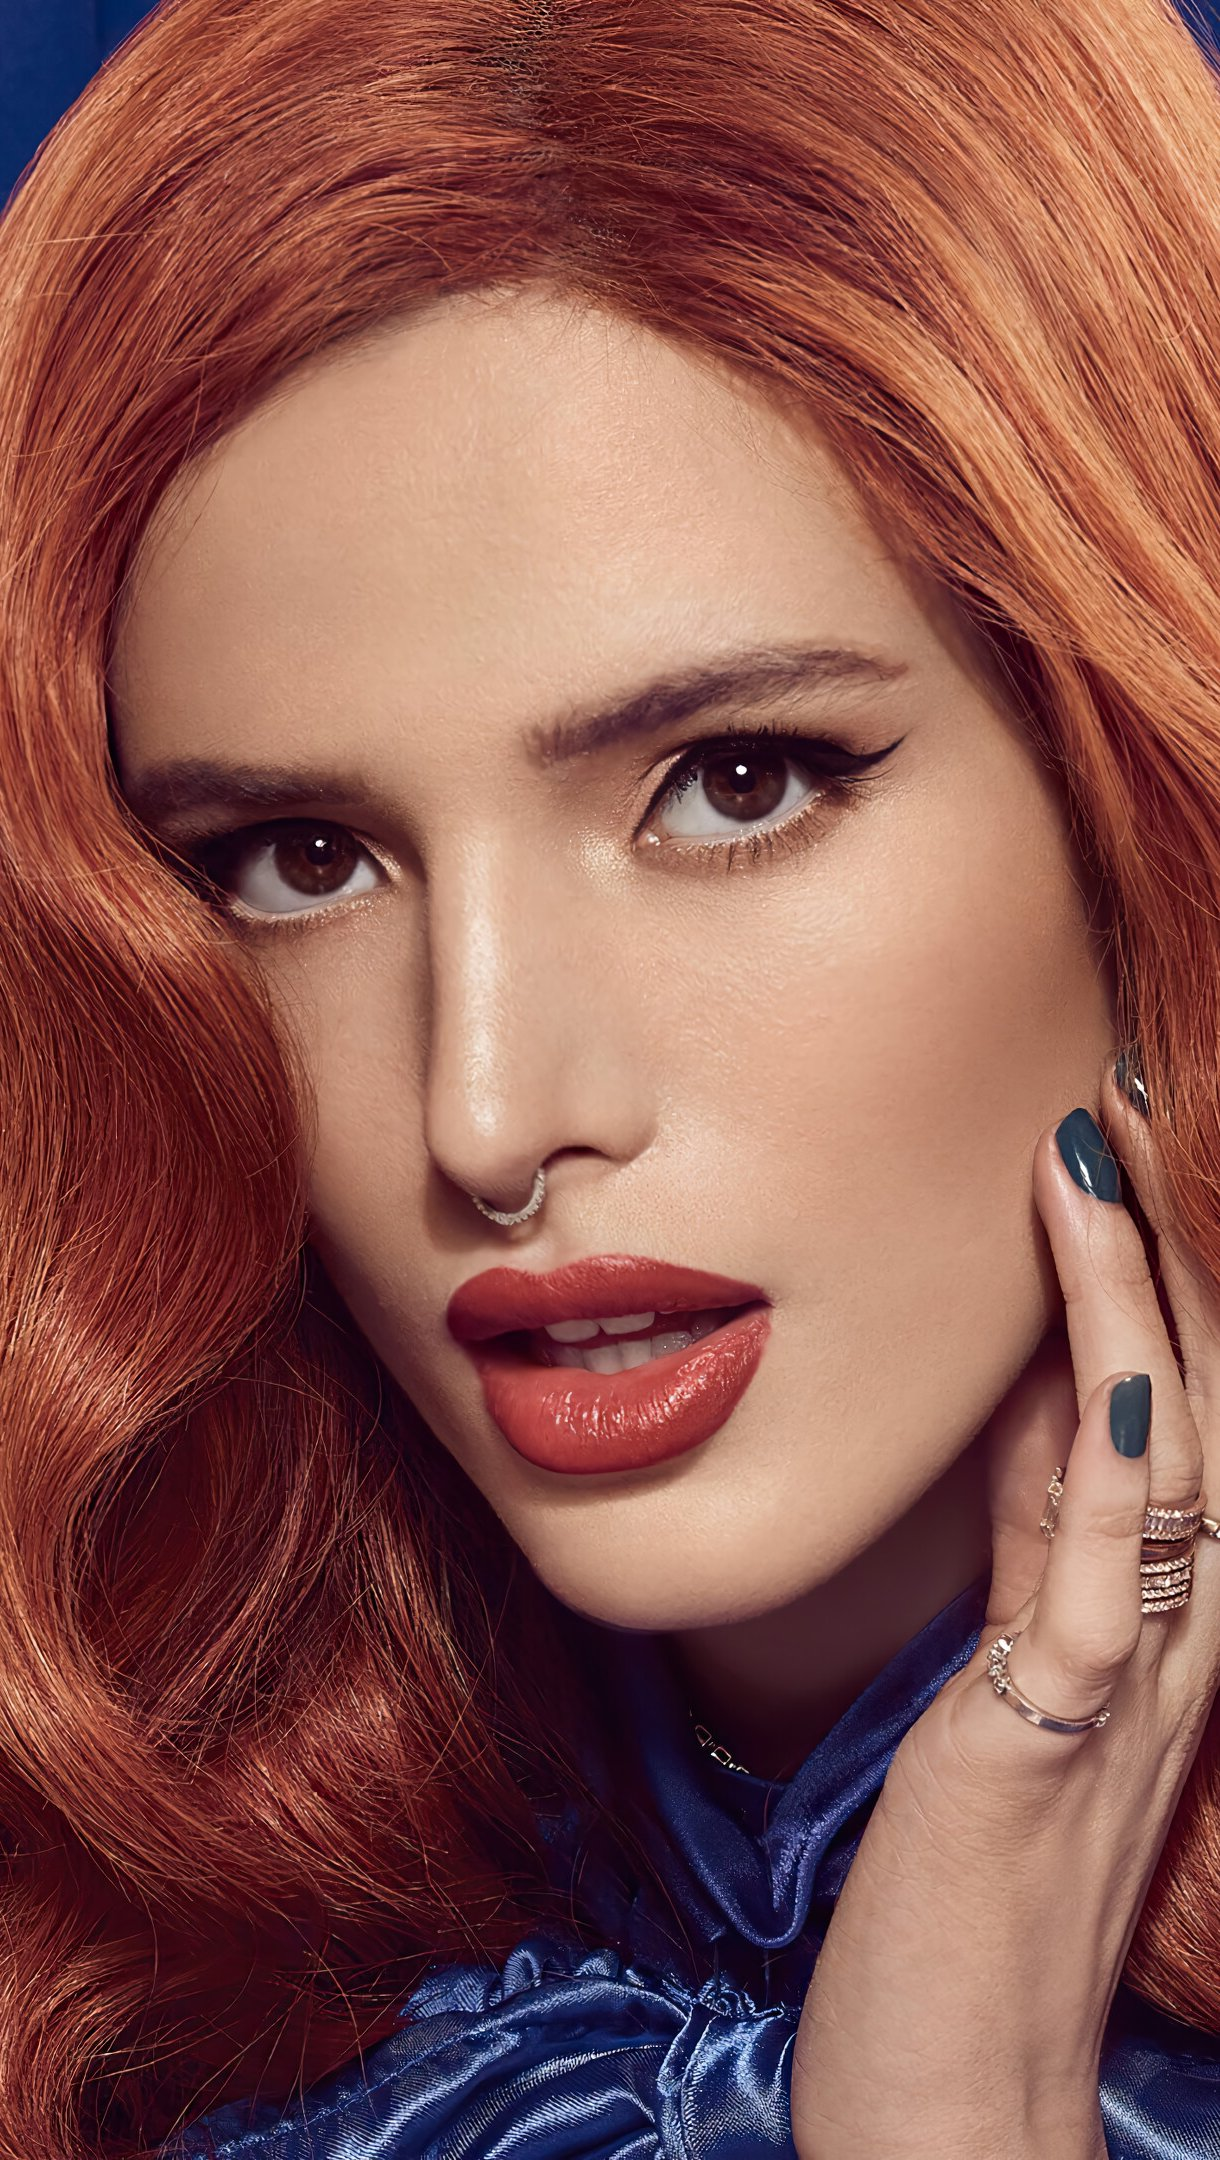 Wallpaper Bella Thorne 2020 Vertical